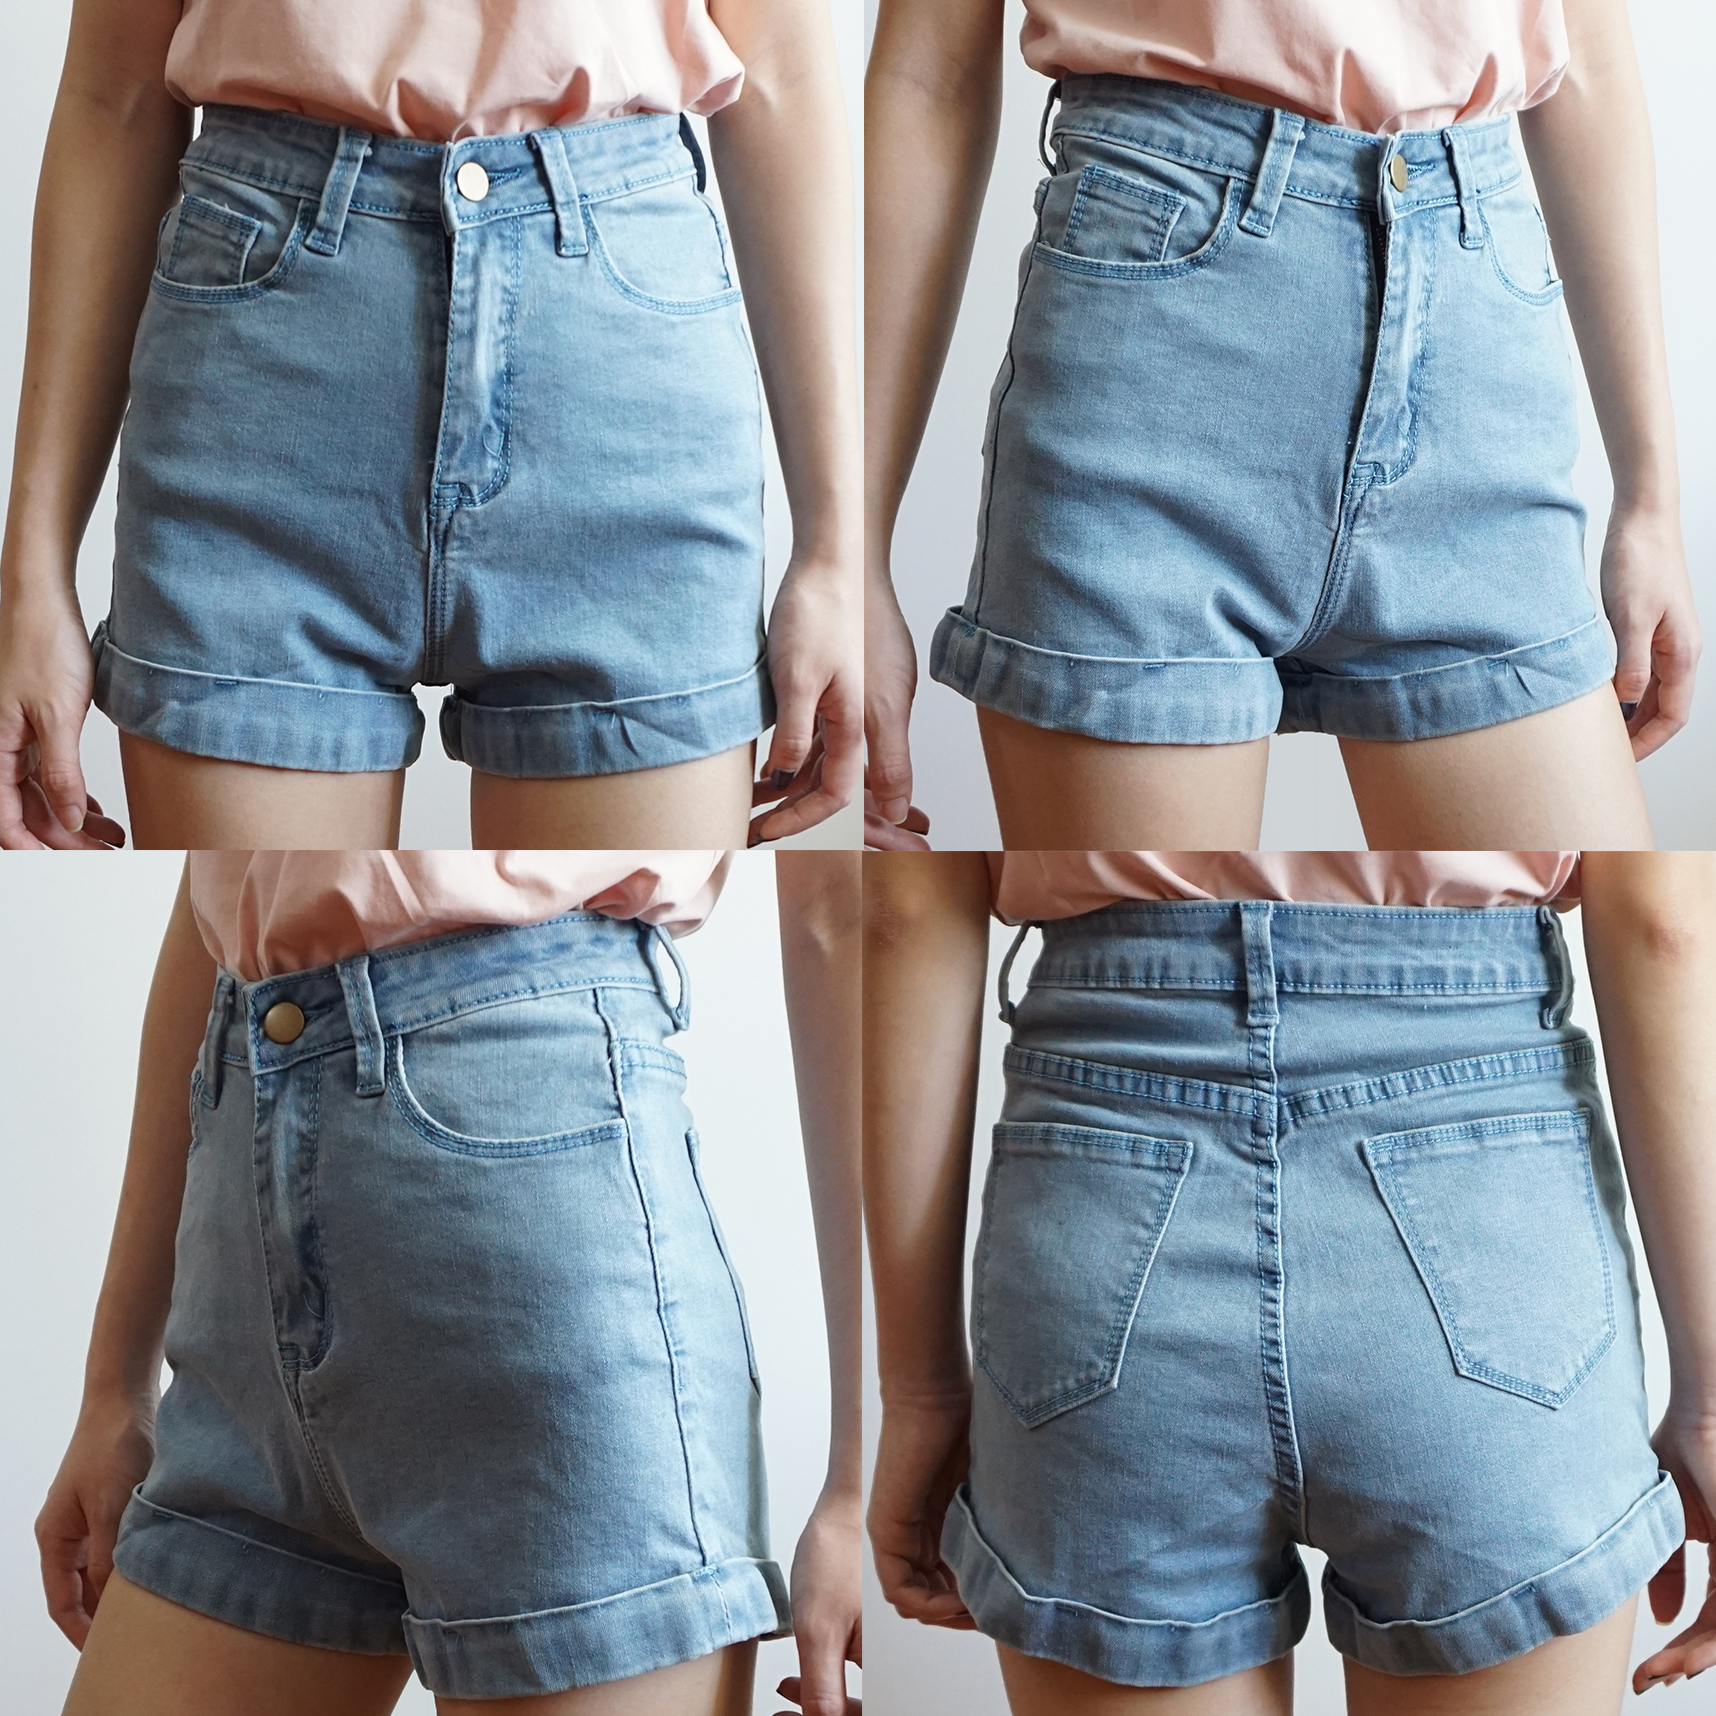 18b3fdd544 Cuffed High Waist Denim Shorts (6 Colors) · Megoosta Fashion · Free ...